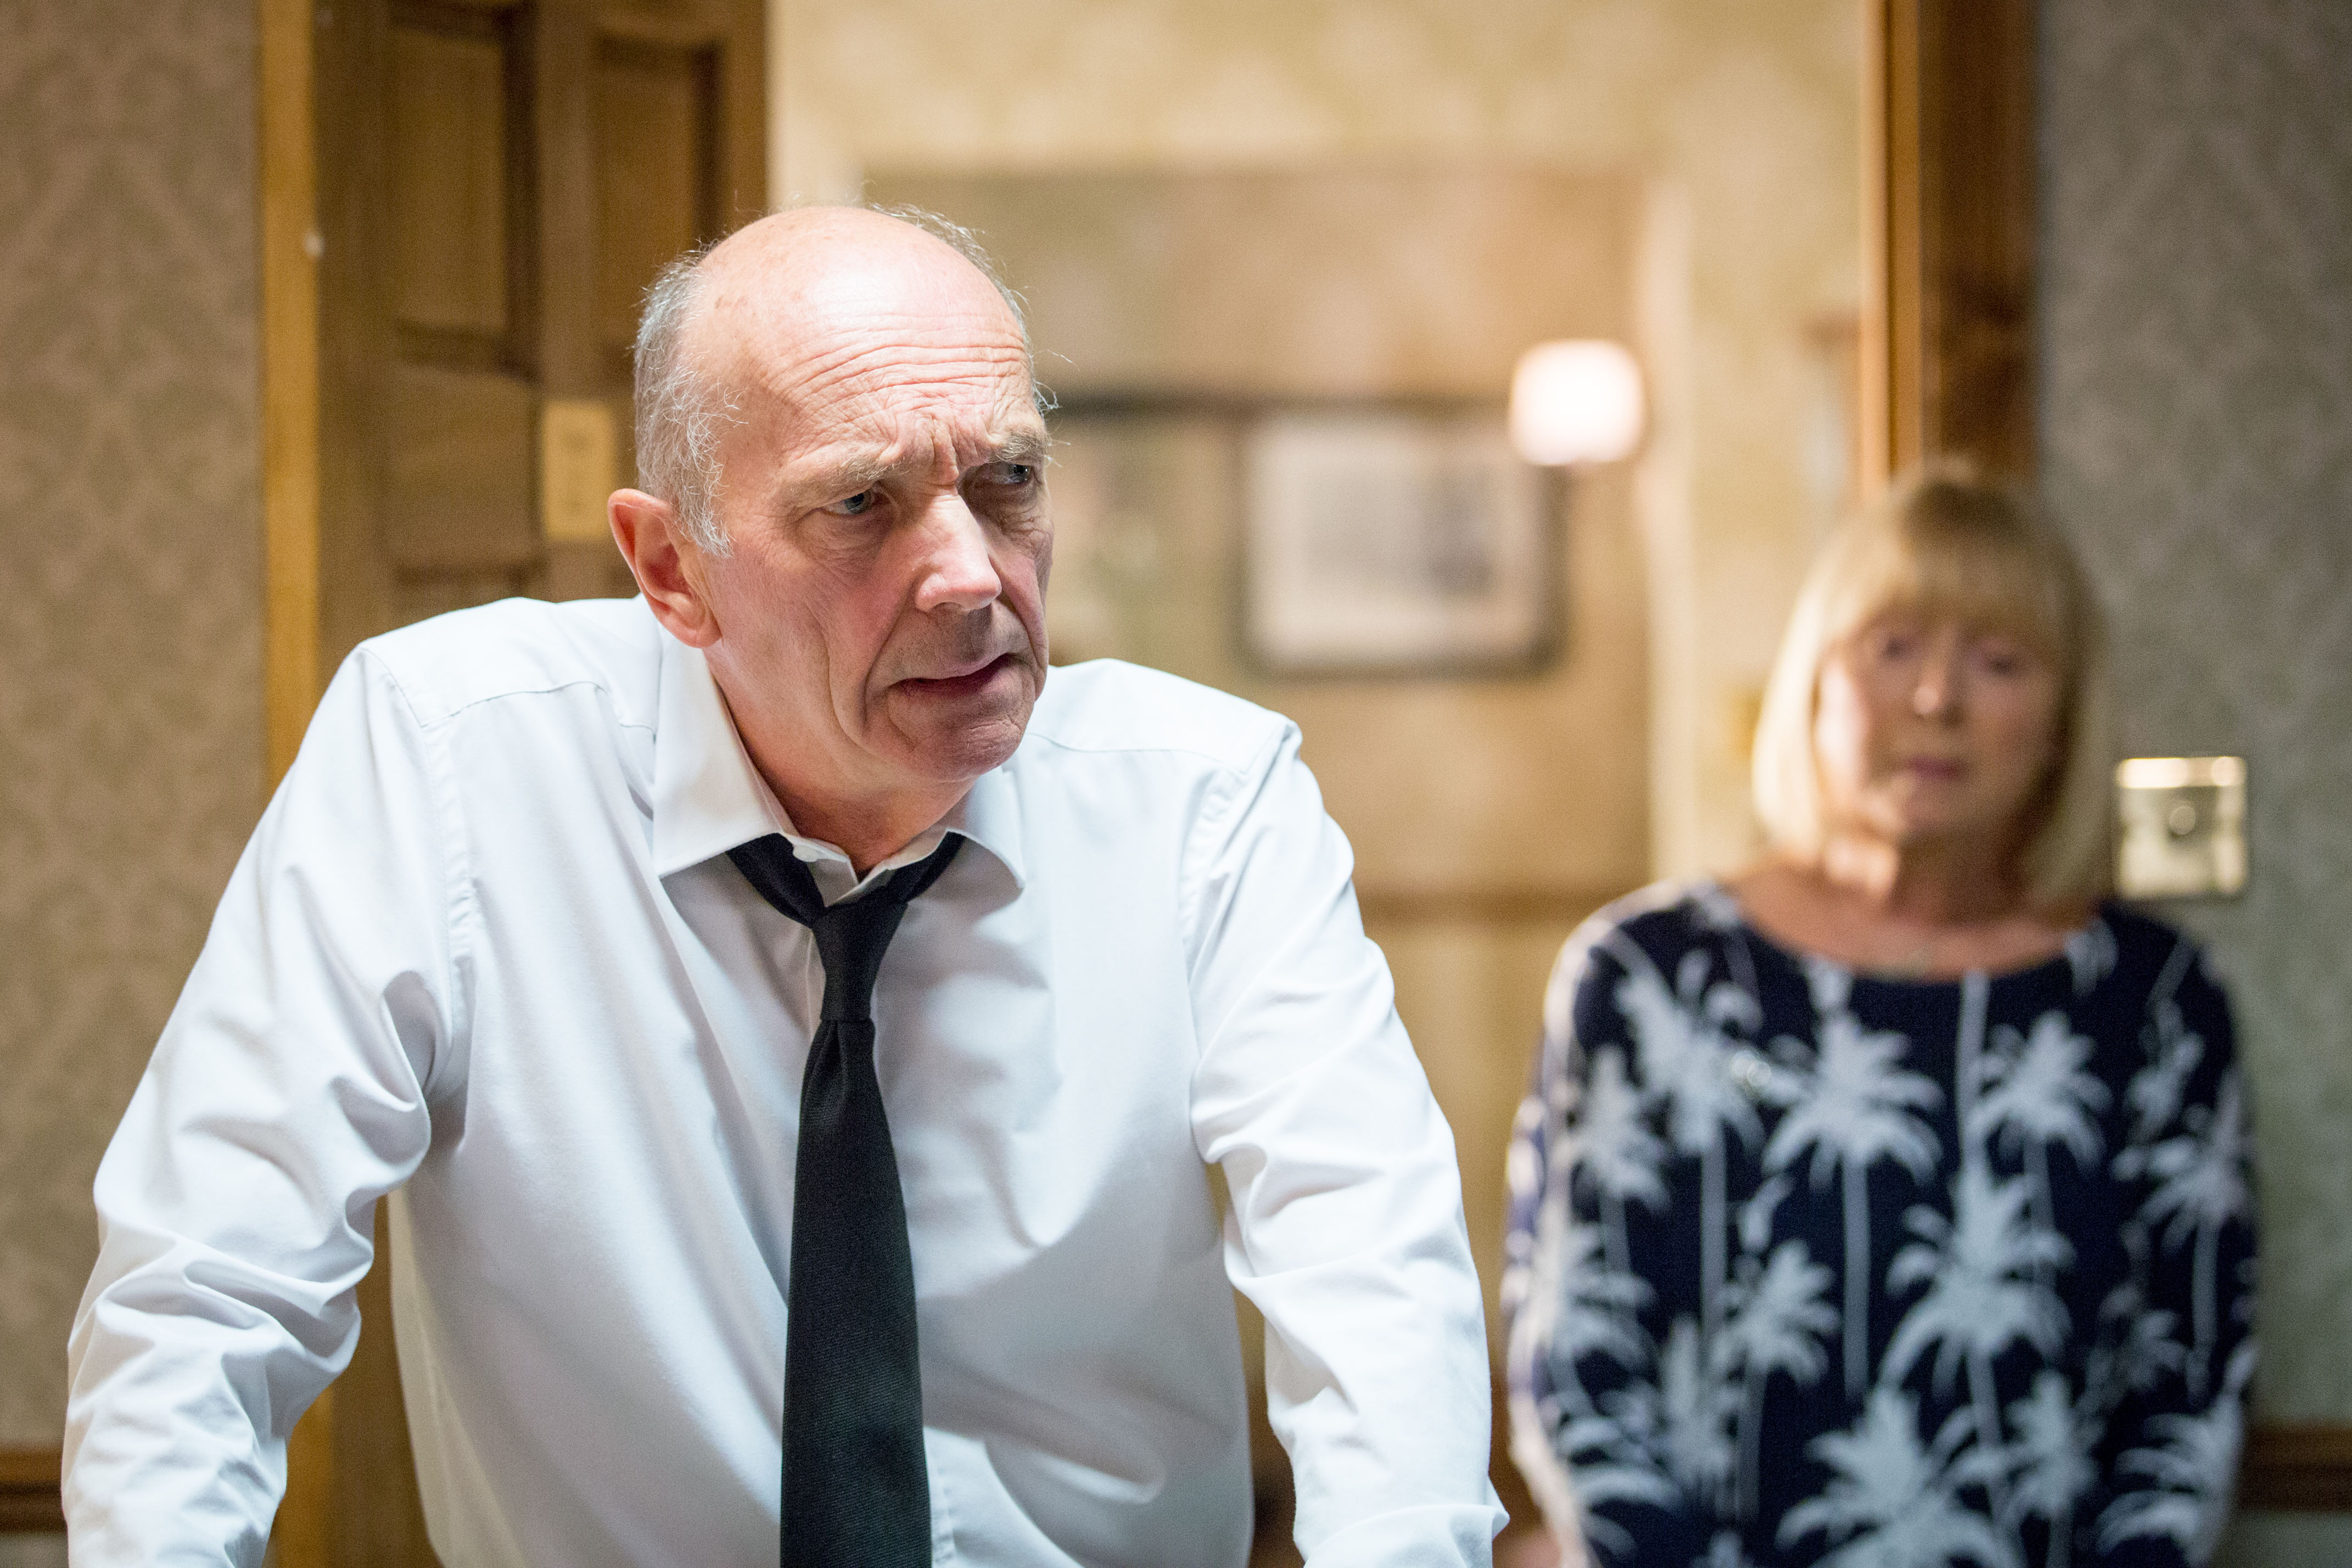 WARNING: Embargoed for publication until 00:00:01 on 13/10/2015 - Programme Name: EastEnders - TX: 19/10/2015 - Episode: 5157 (No. n/a) - Picture Shows: ***FORTNIGHTLIES PLEASE DO NOT USE (SOAP LIFE and ALL ABOUT SOAP) Pam tries to get to the bottom of what is wrong with Les and she is stunned to hear the truth. Les Coker (ROGER SLOMAN), Pam Coker (LIN BLAKLEY) - (C) BBC - Photographer: Guy Levy